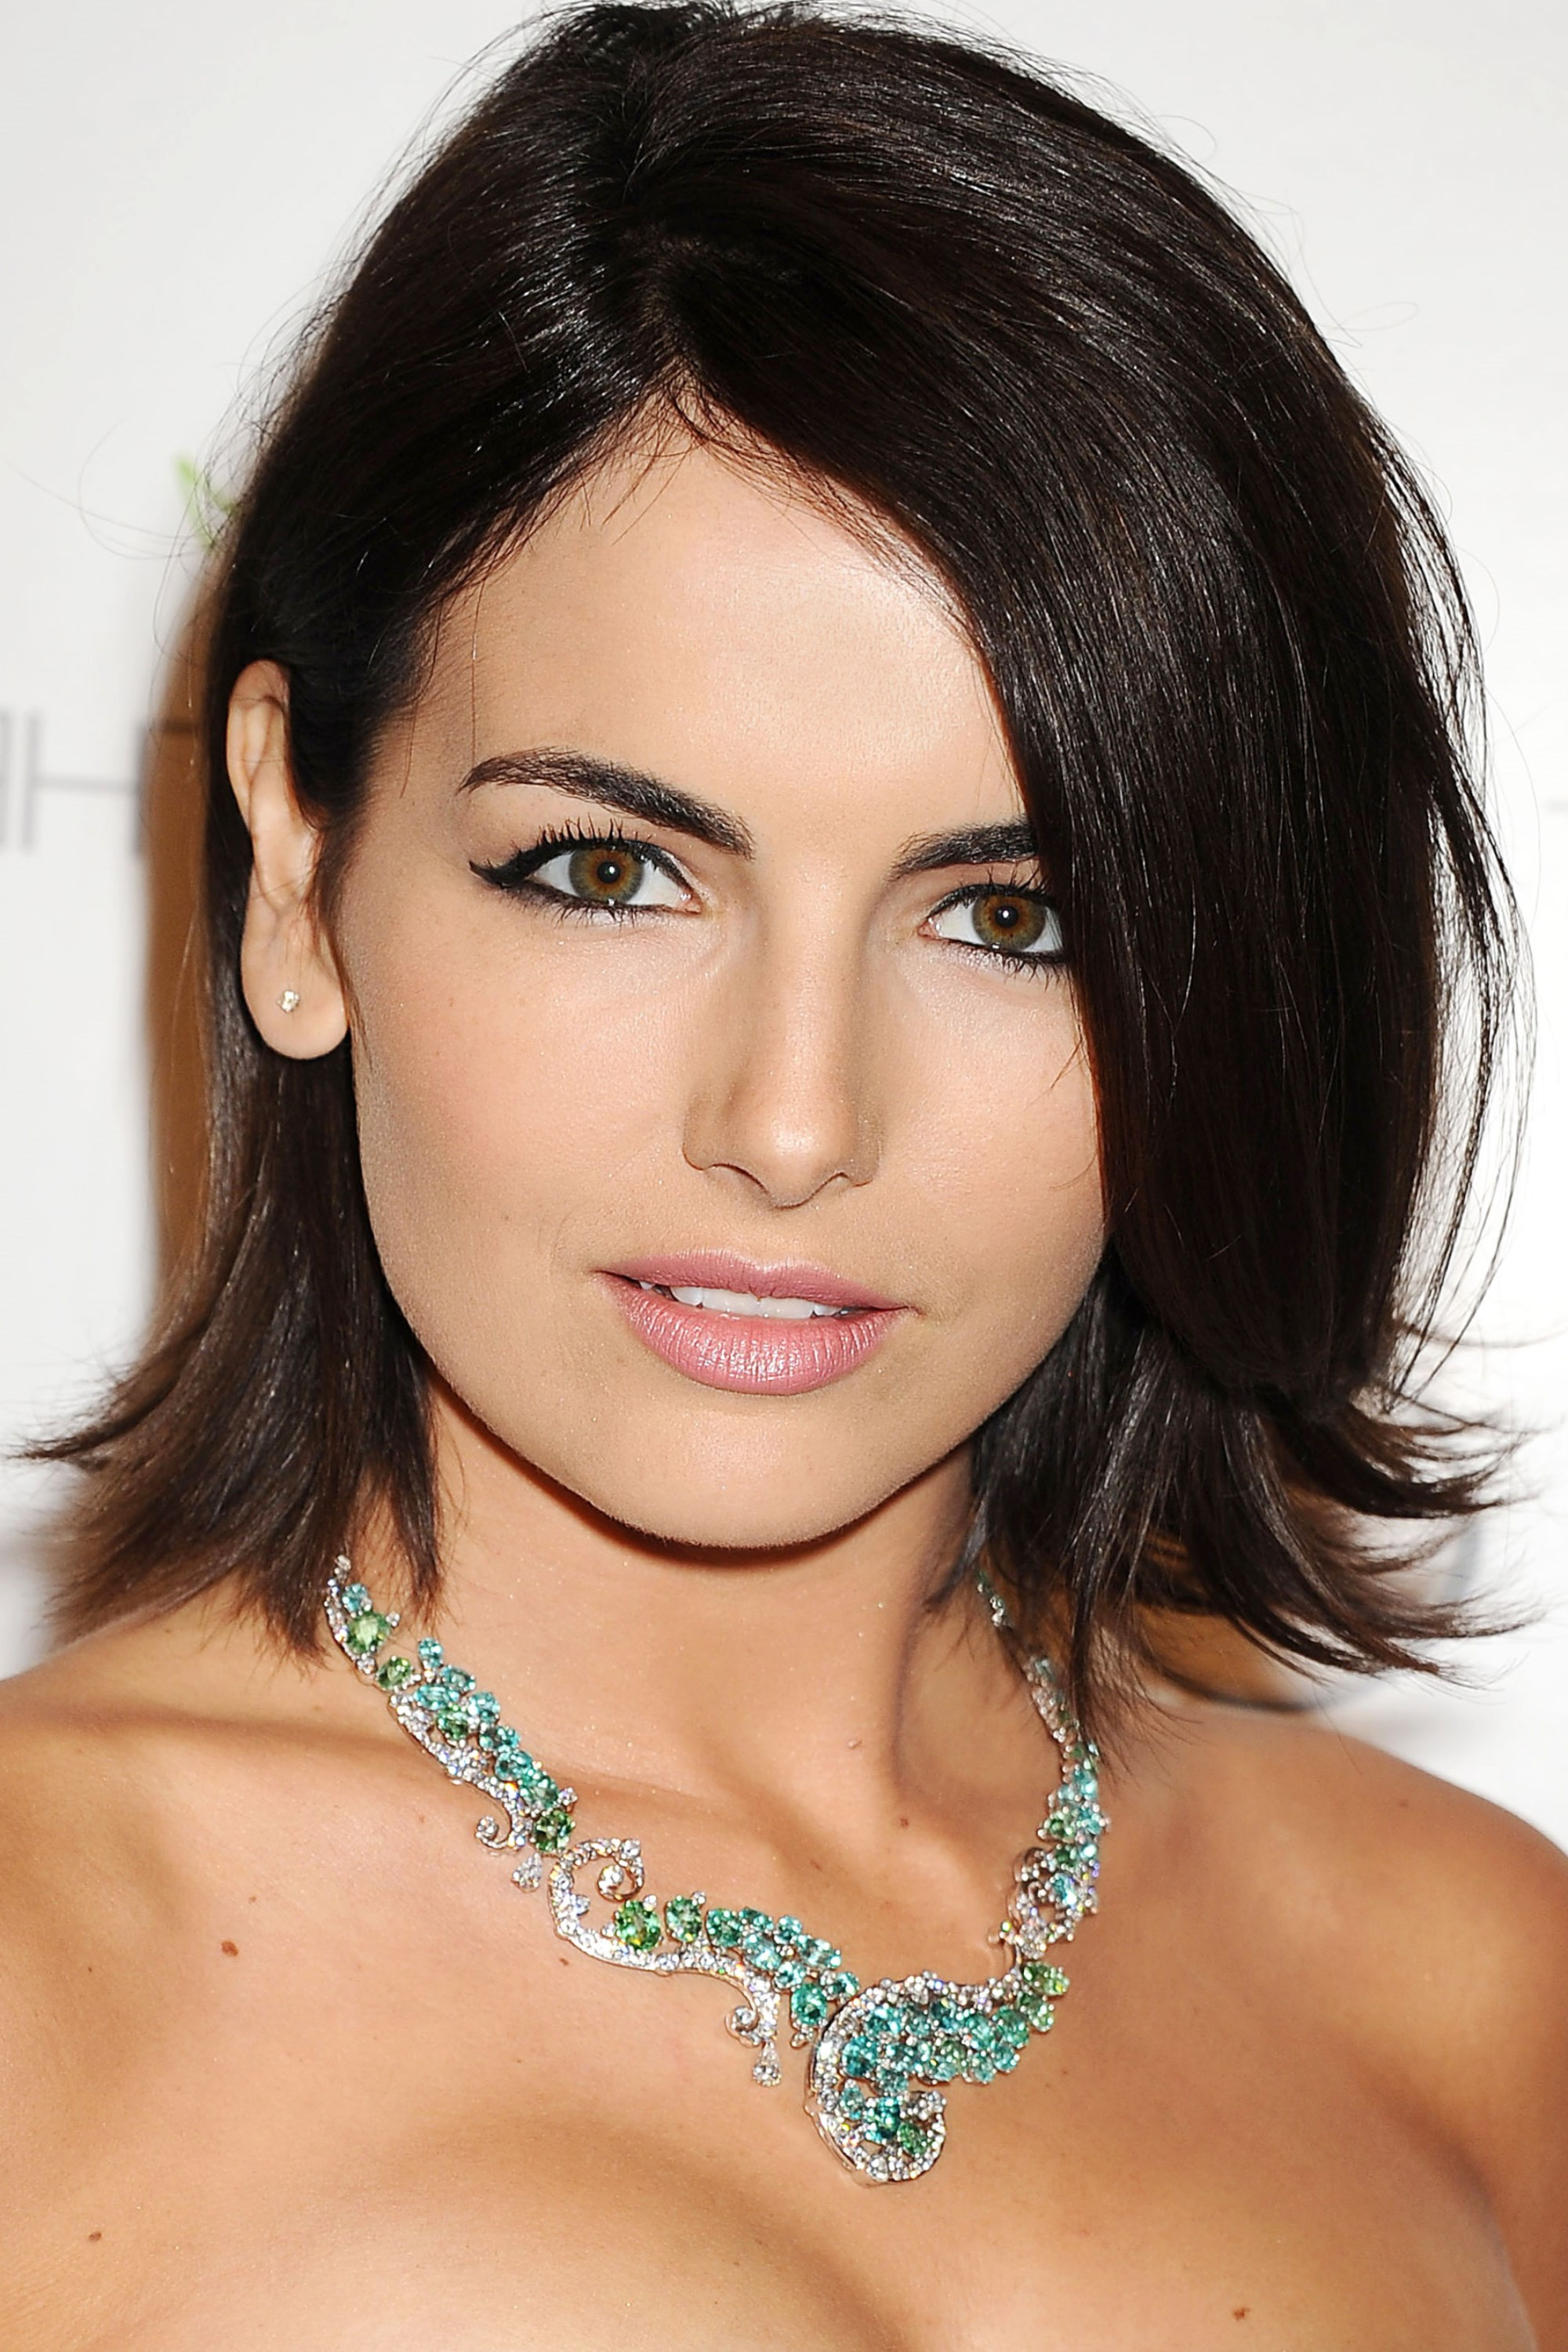 Medium Hairstyles For Thin Hair The Right Hairstyles For You